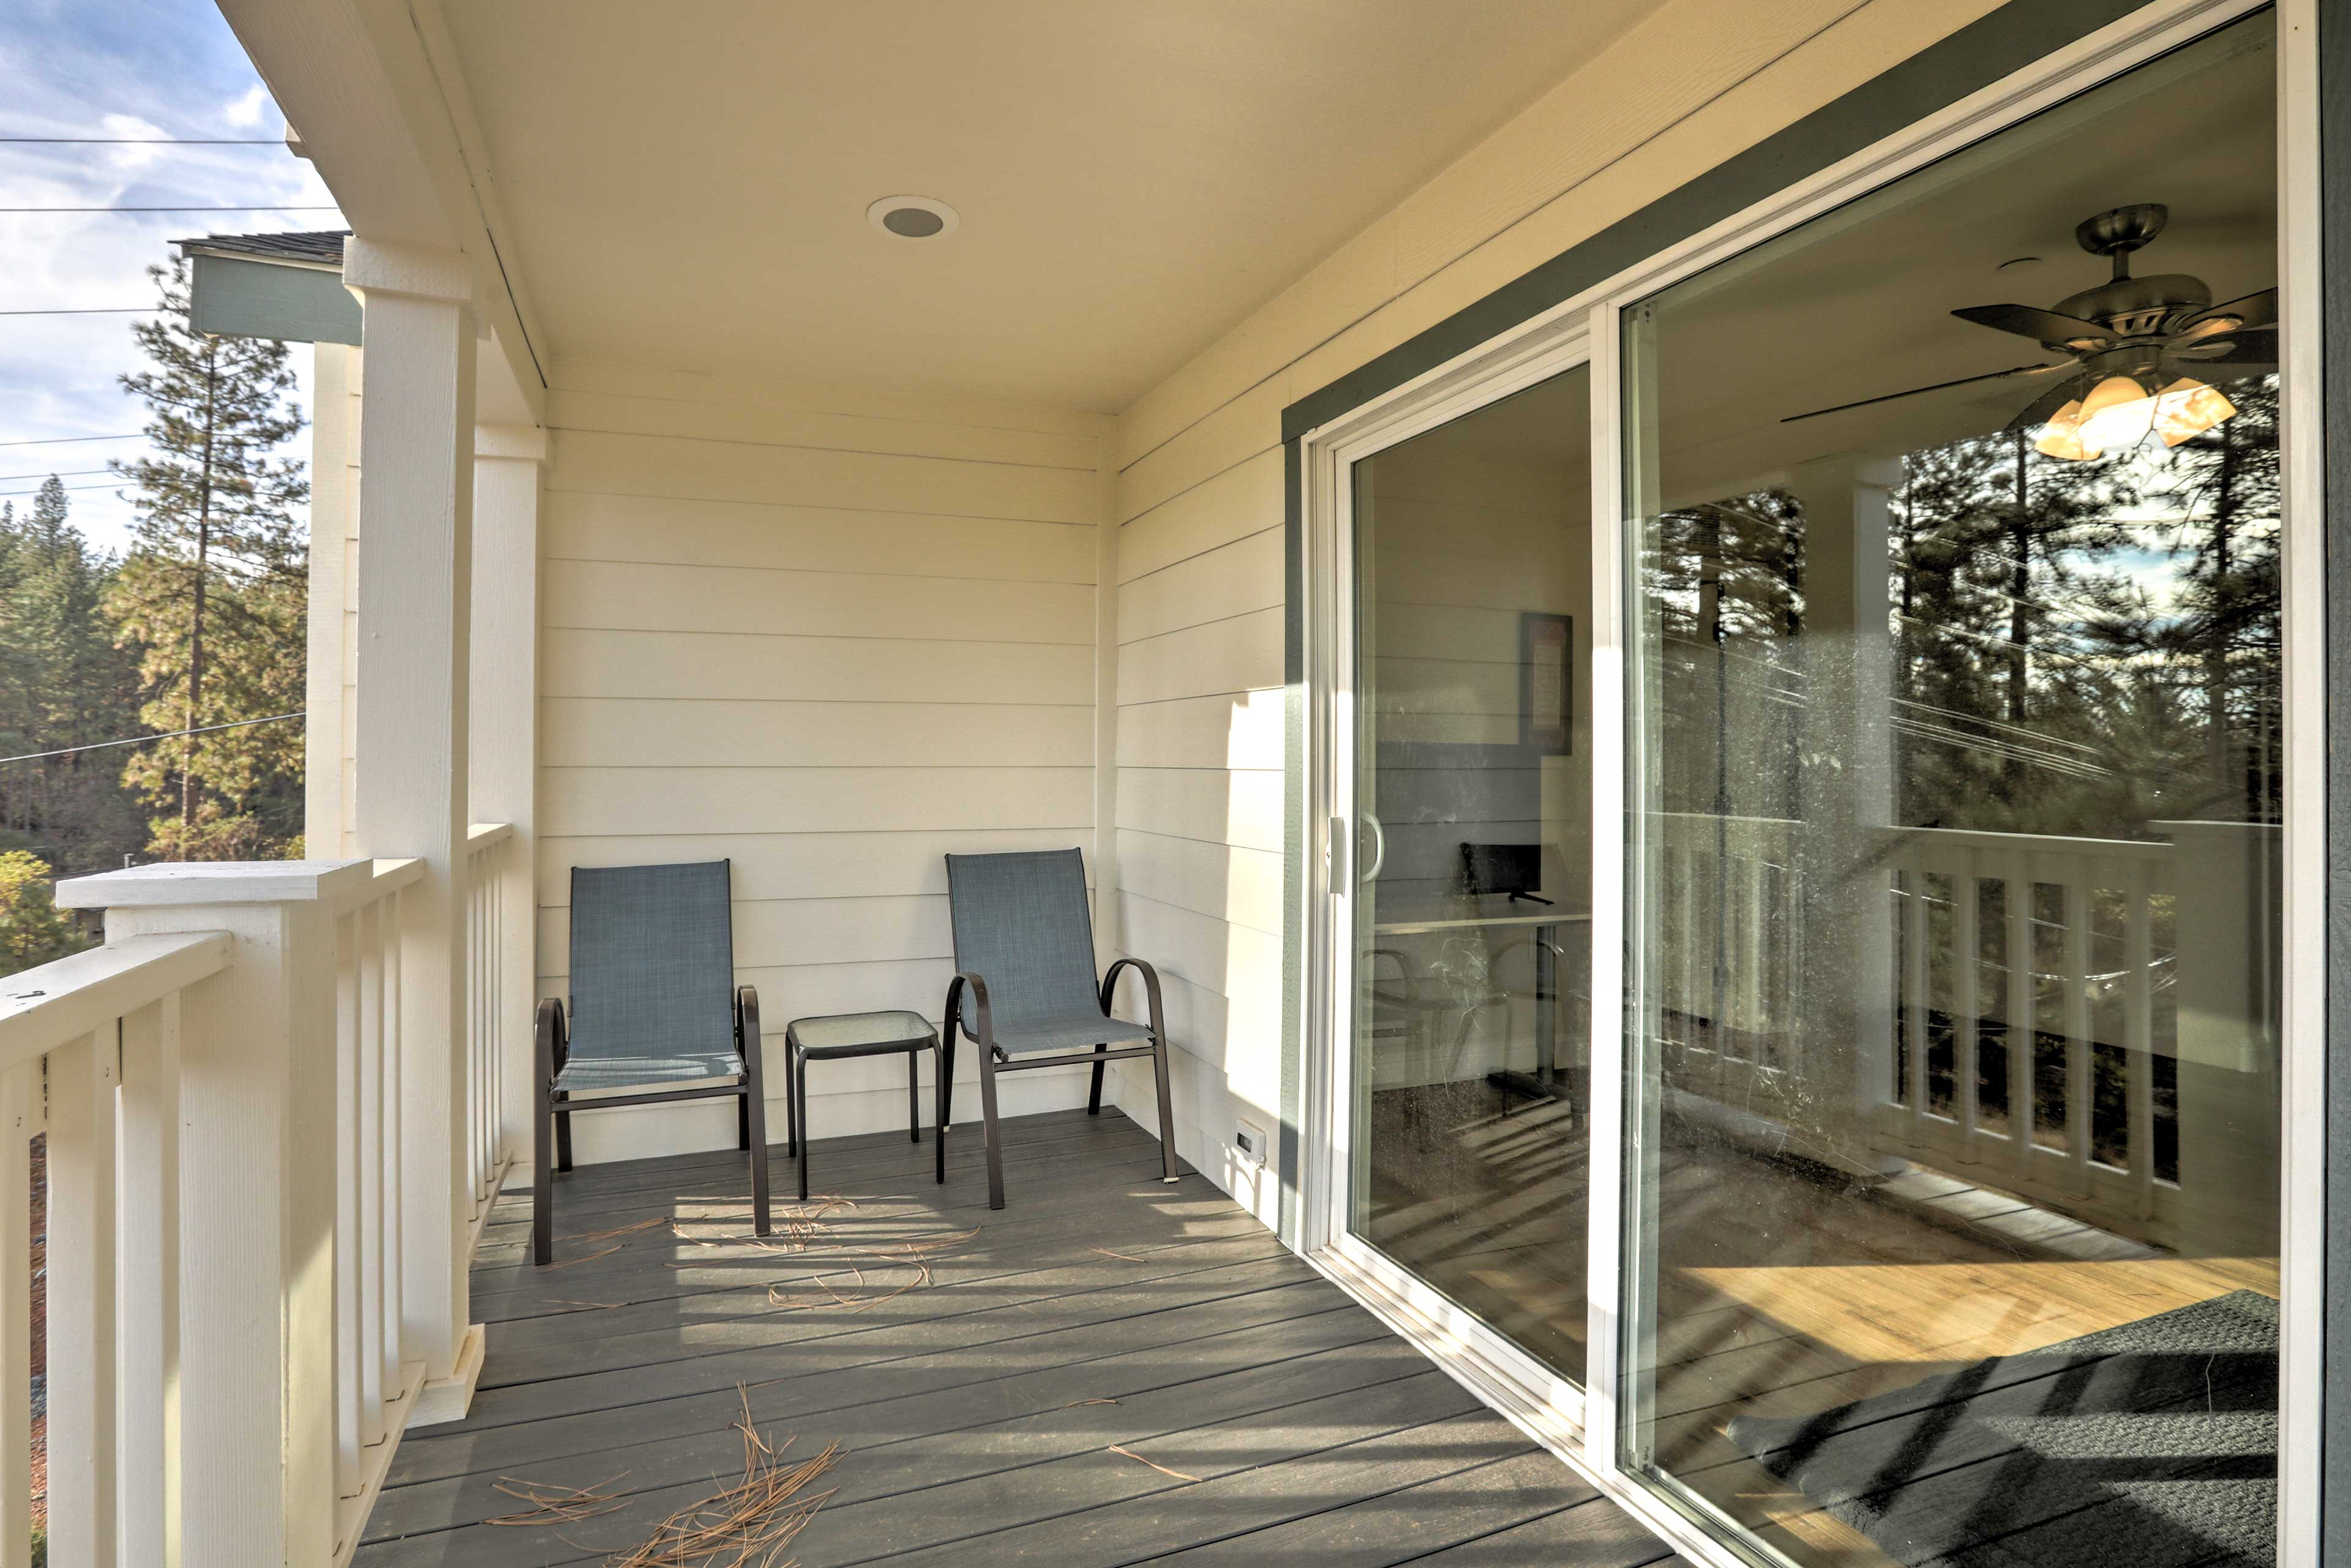 Sip your morning coffee in the sun on the balcony.